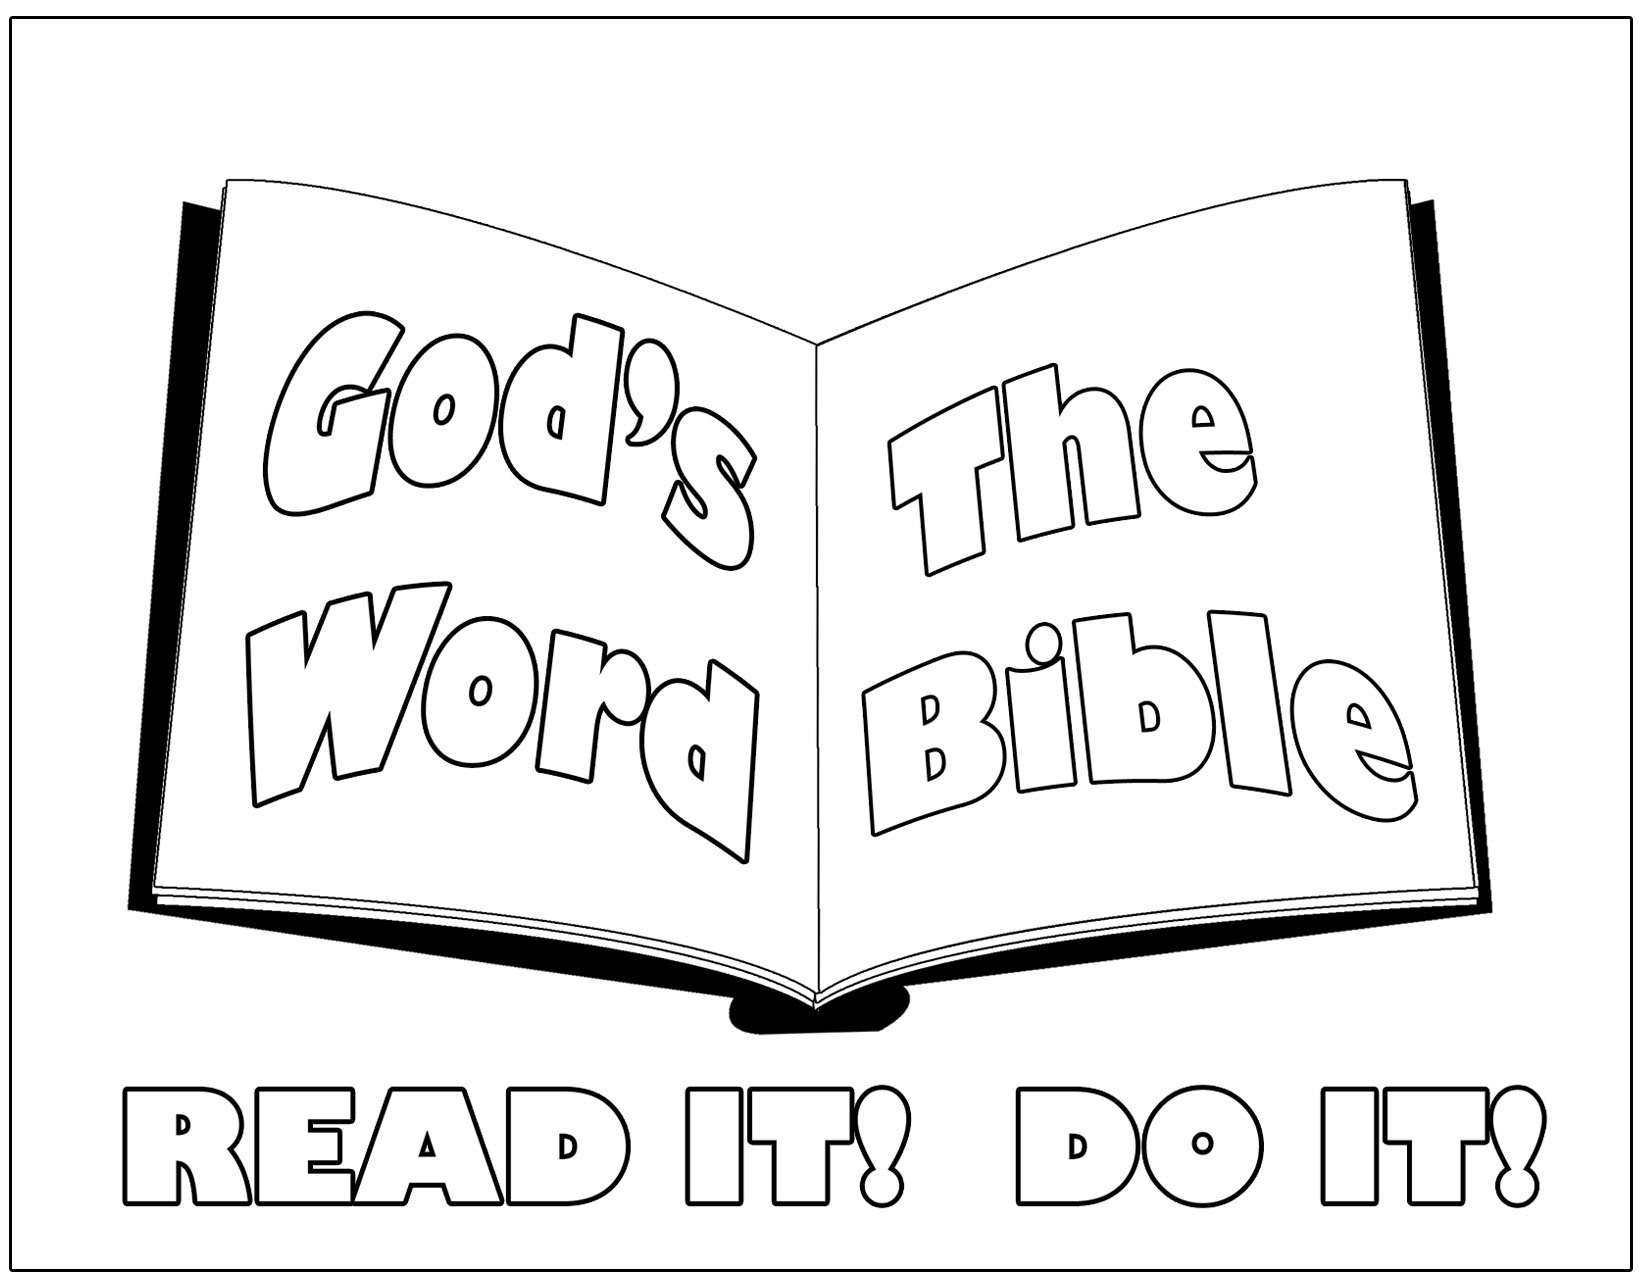 Coloring Pages For Job In The Bible : Free printable bible coloring pages for kids